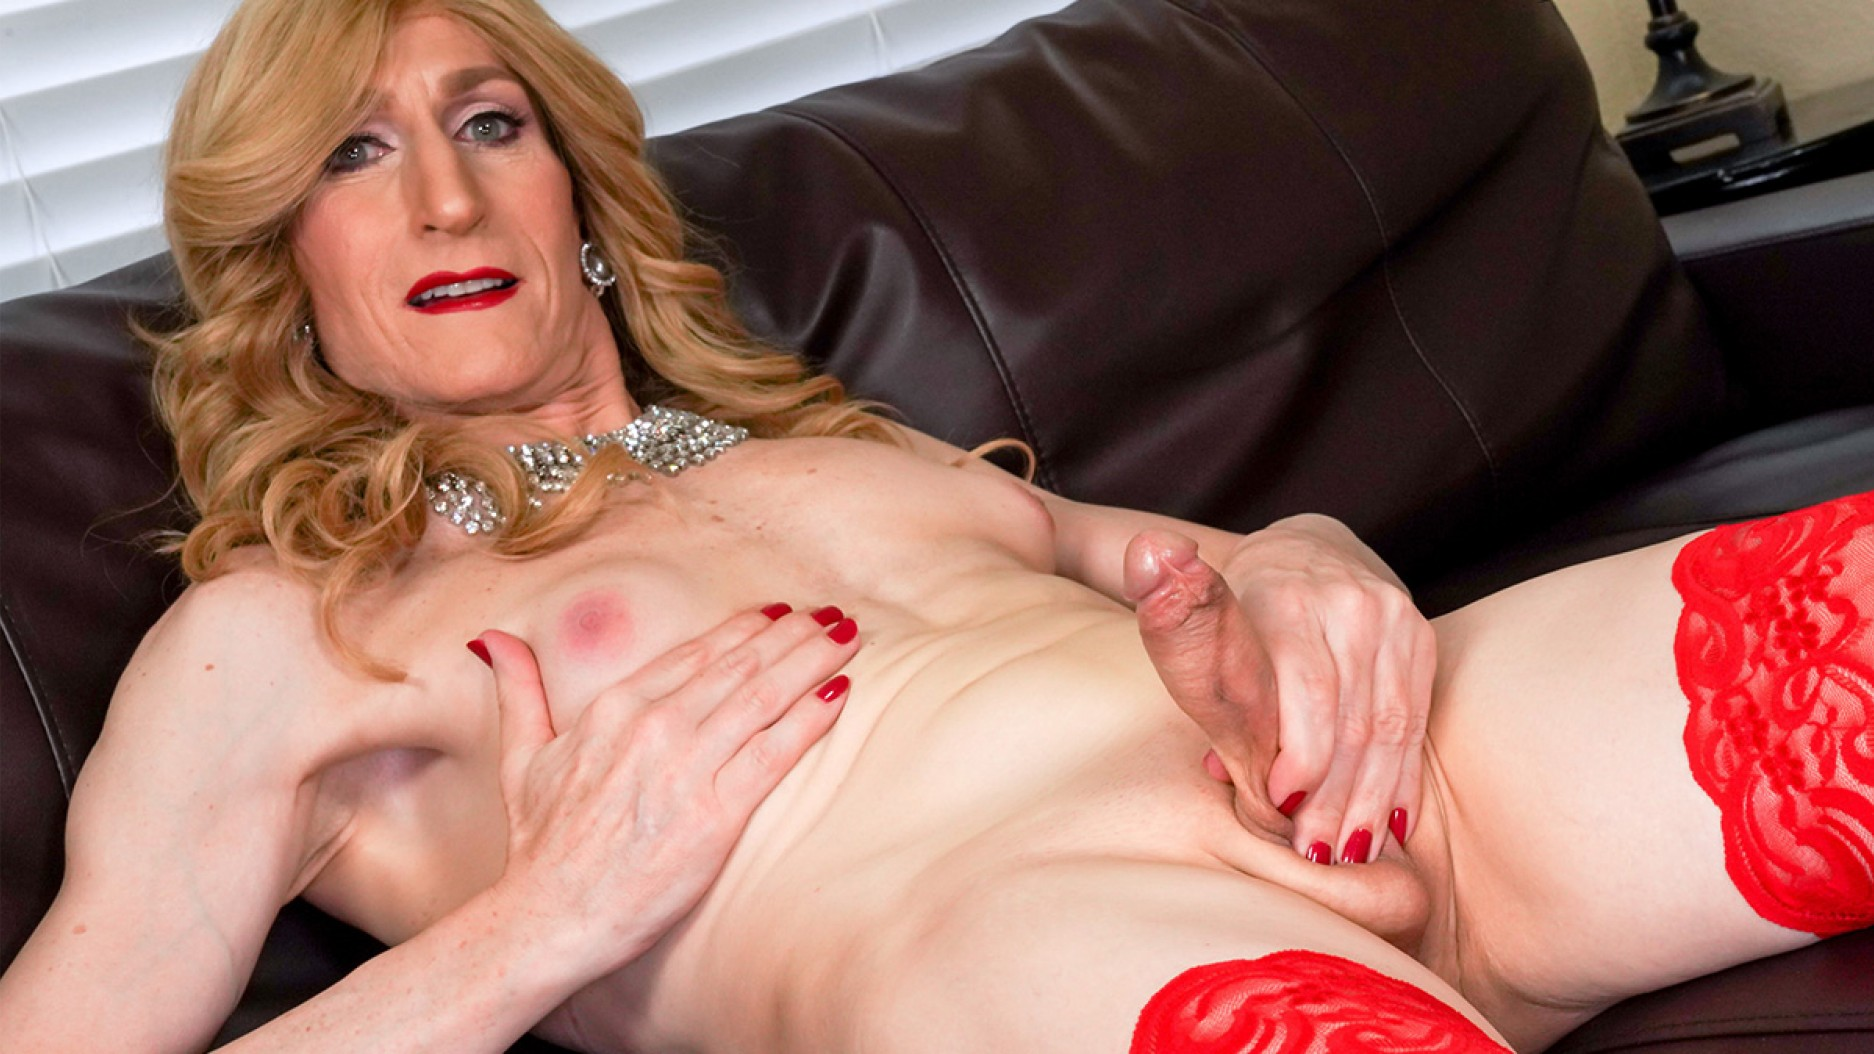 TGirl40 Behold The Stunning Kacy TGirl!  Shemale XXX WEB-DL Groobynetwork Siterip RIP